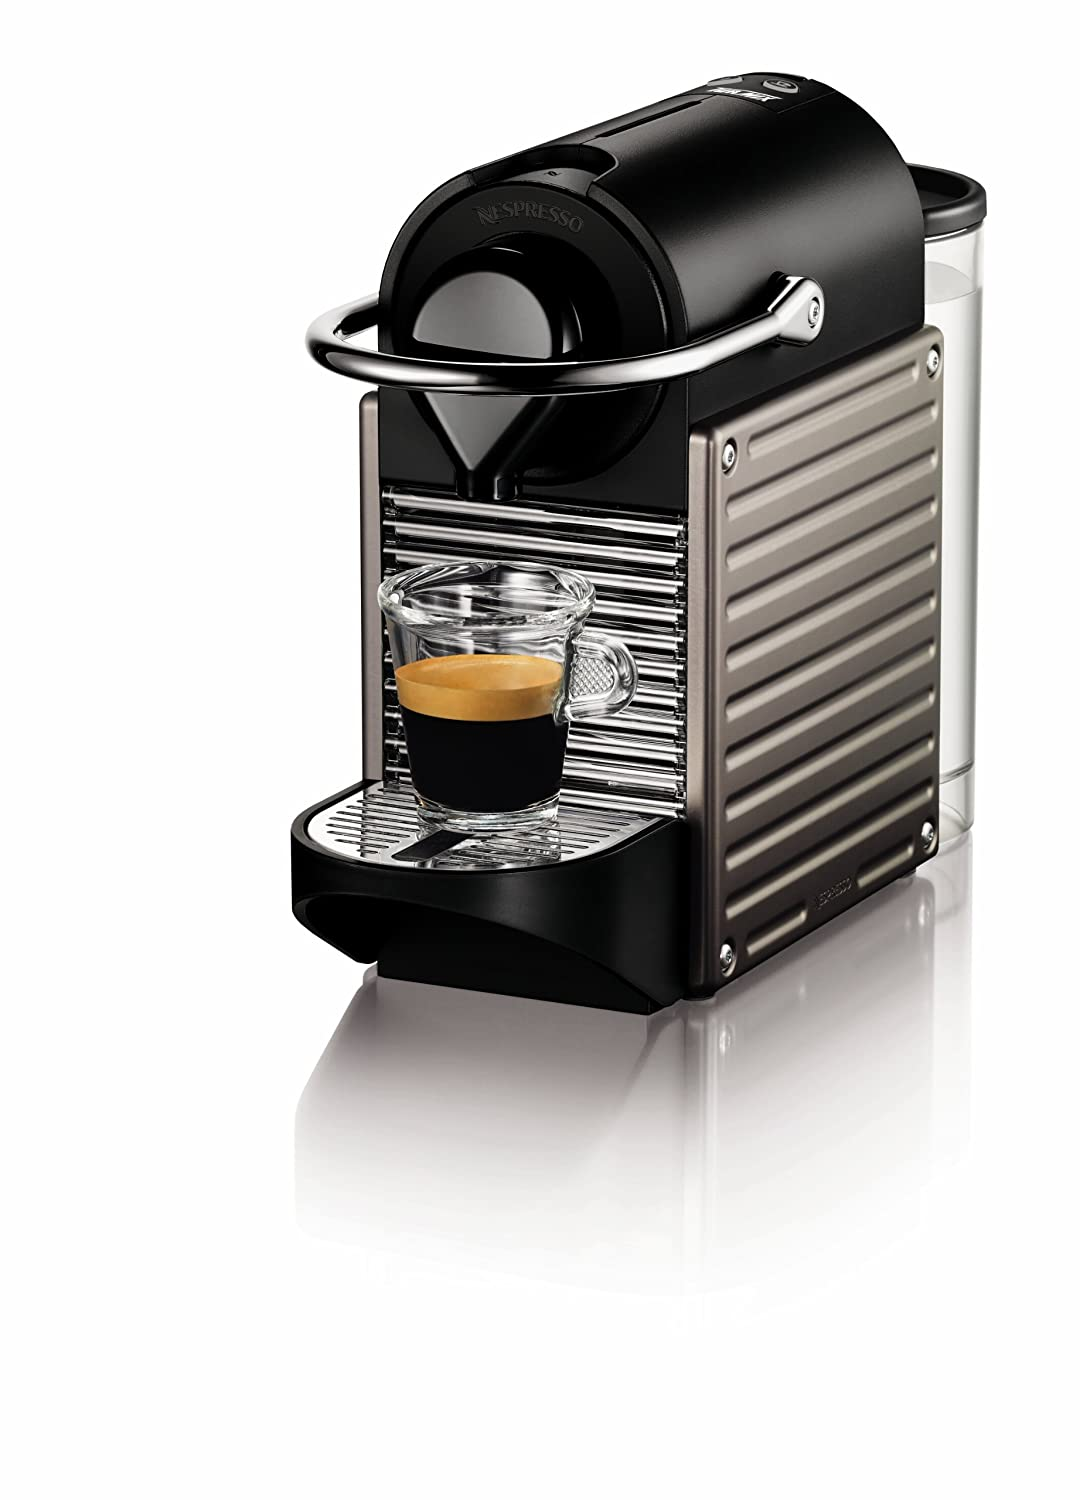 Good Coffee Makers Home Use : Best-Rated Super Automatic Espresso Coffee Machines For Home Use - Reviews And Ratings 2015